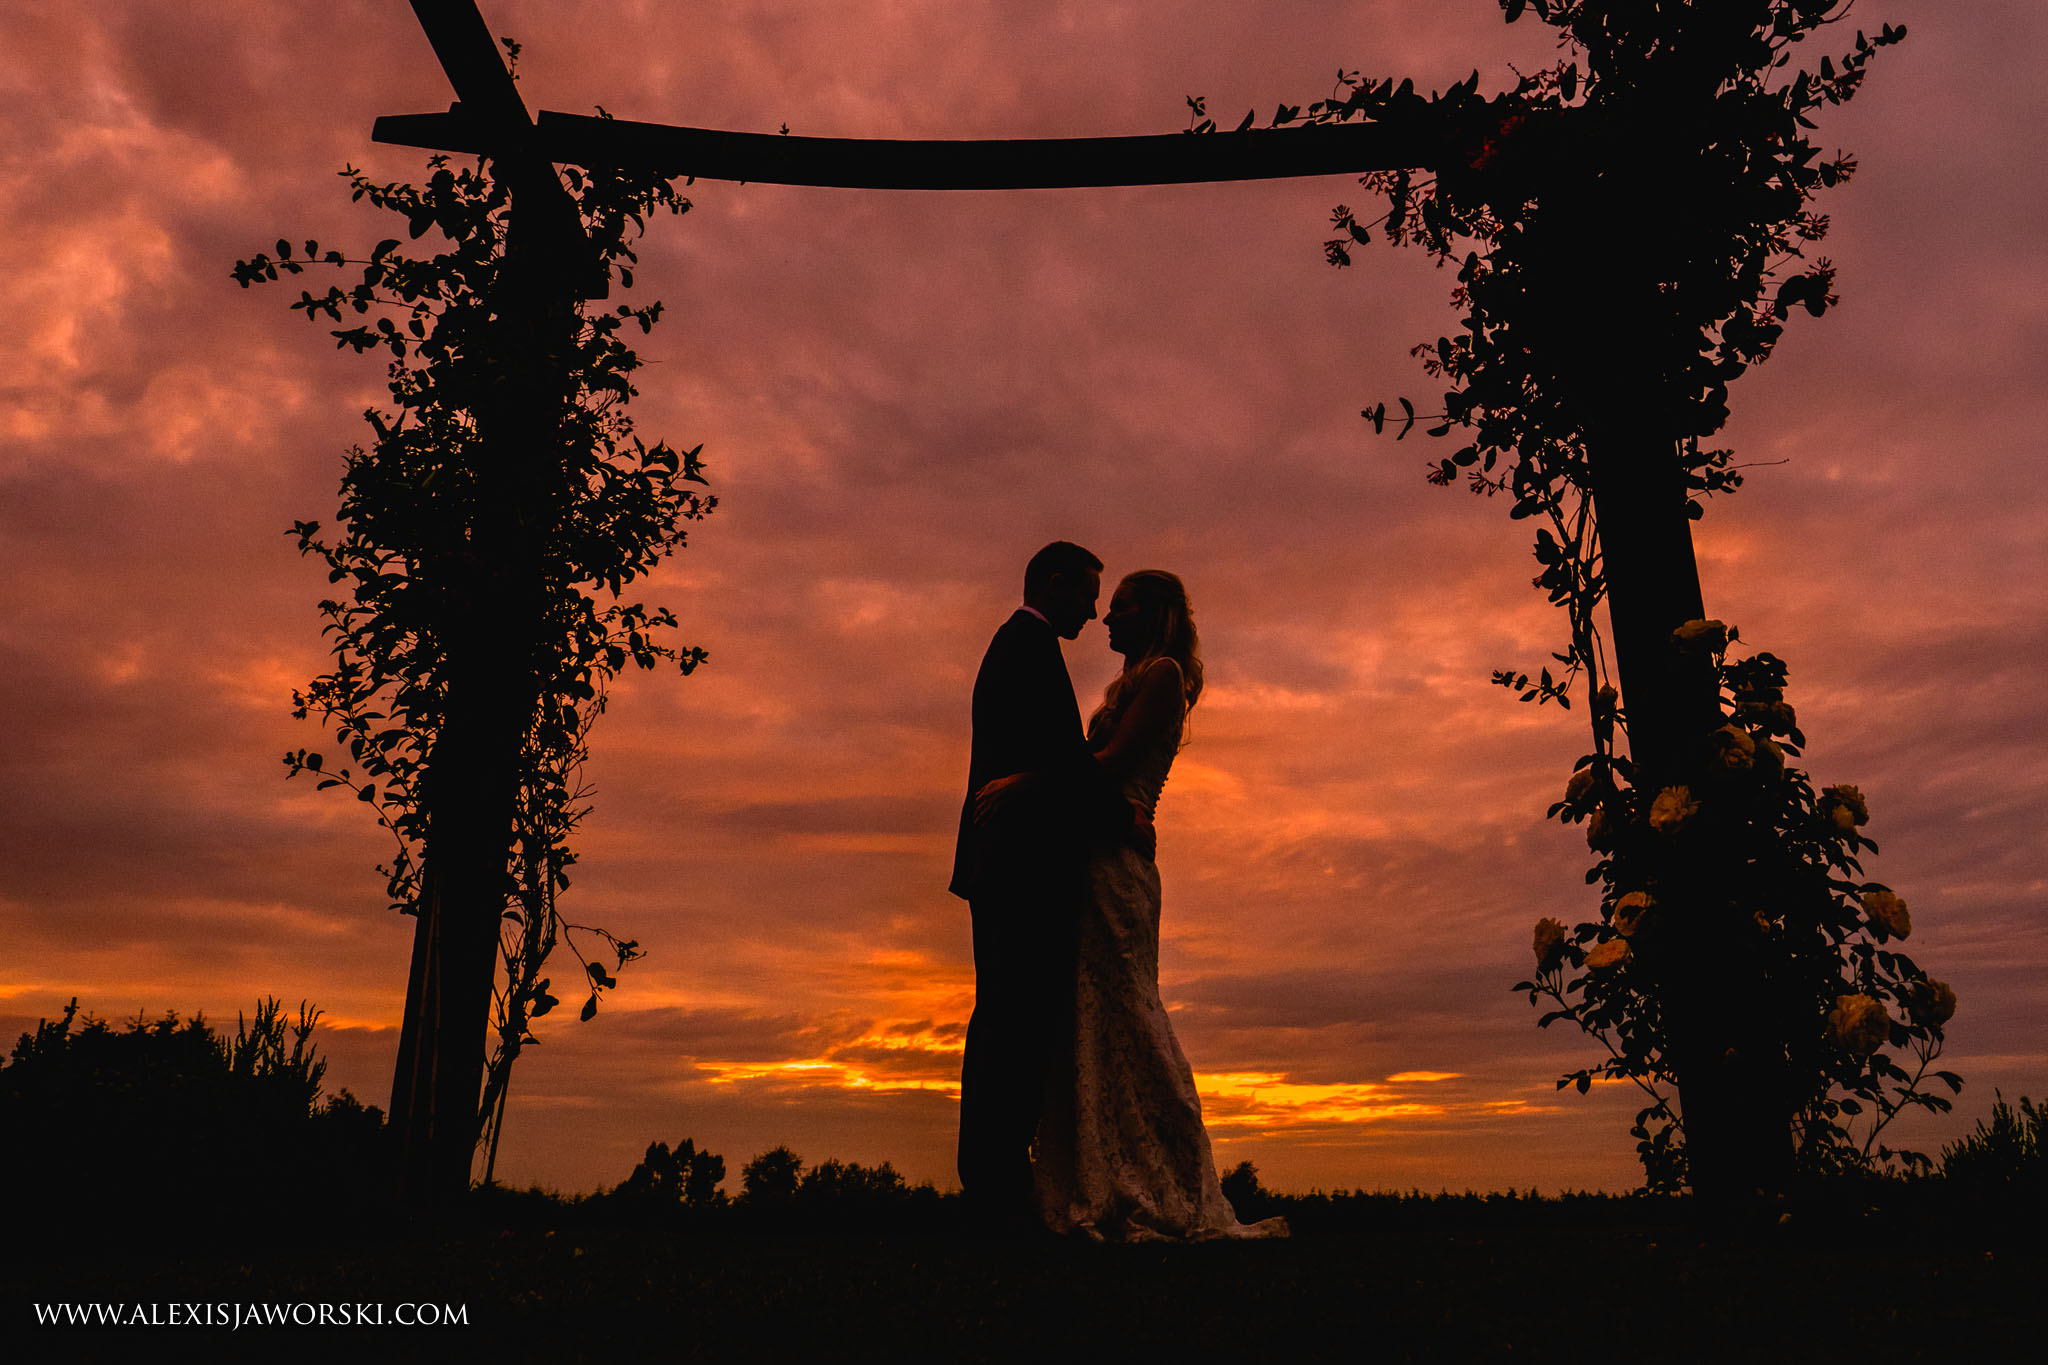 Sunset Portrait of the bride and groom